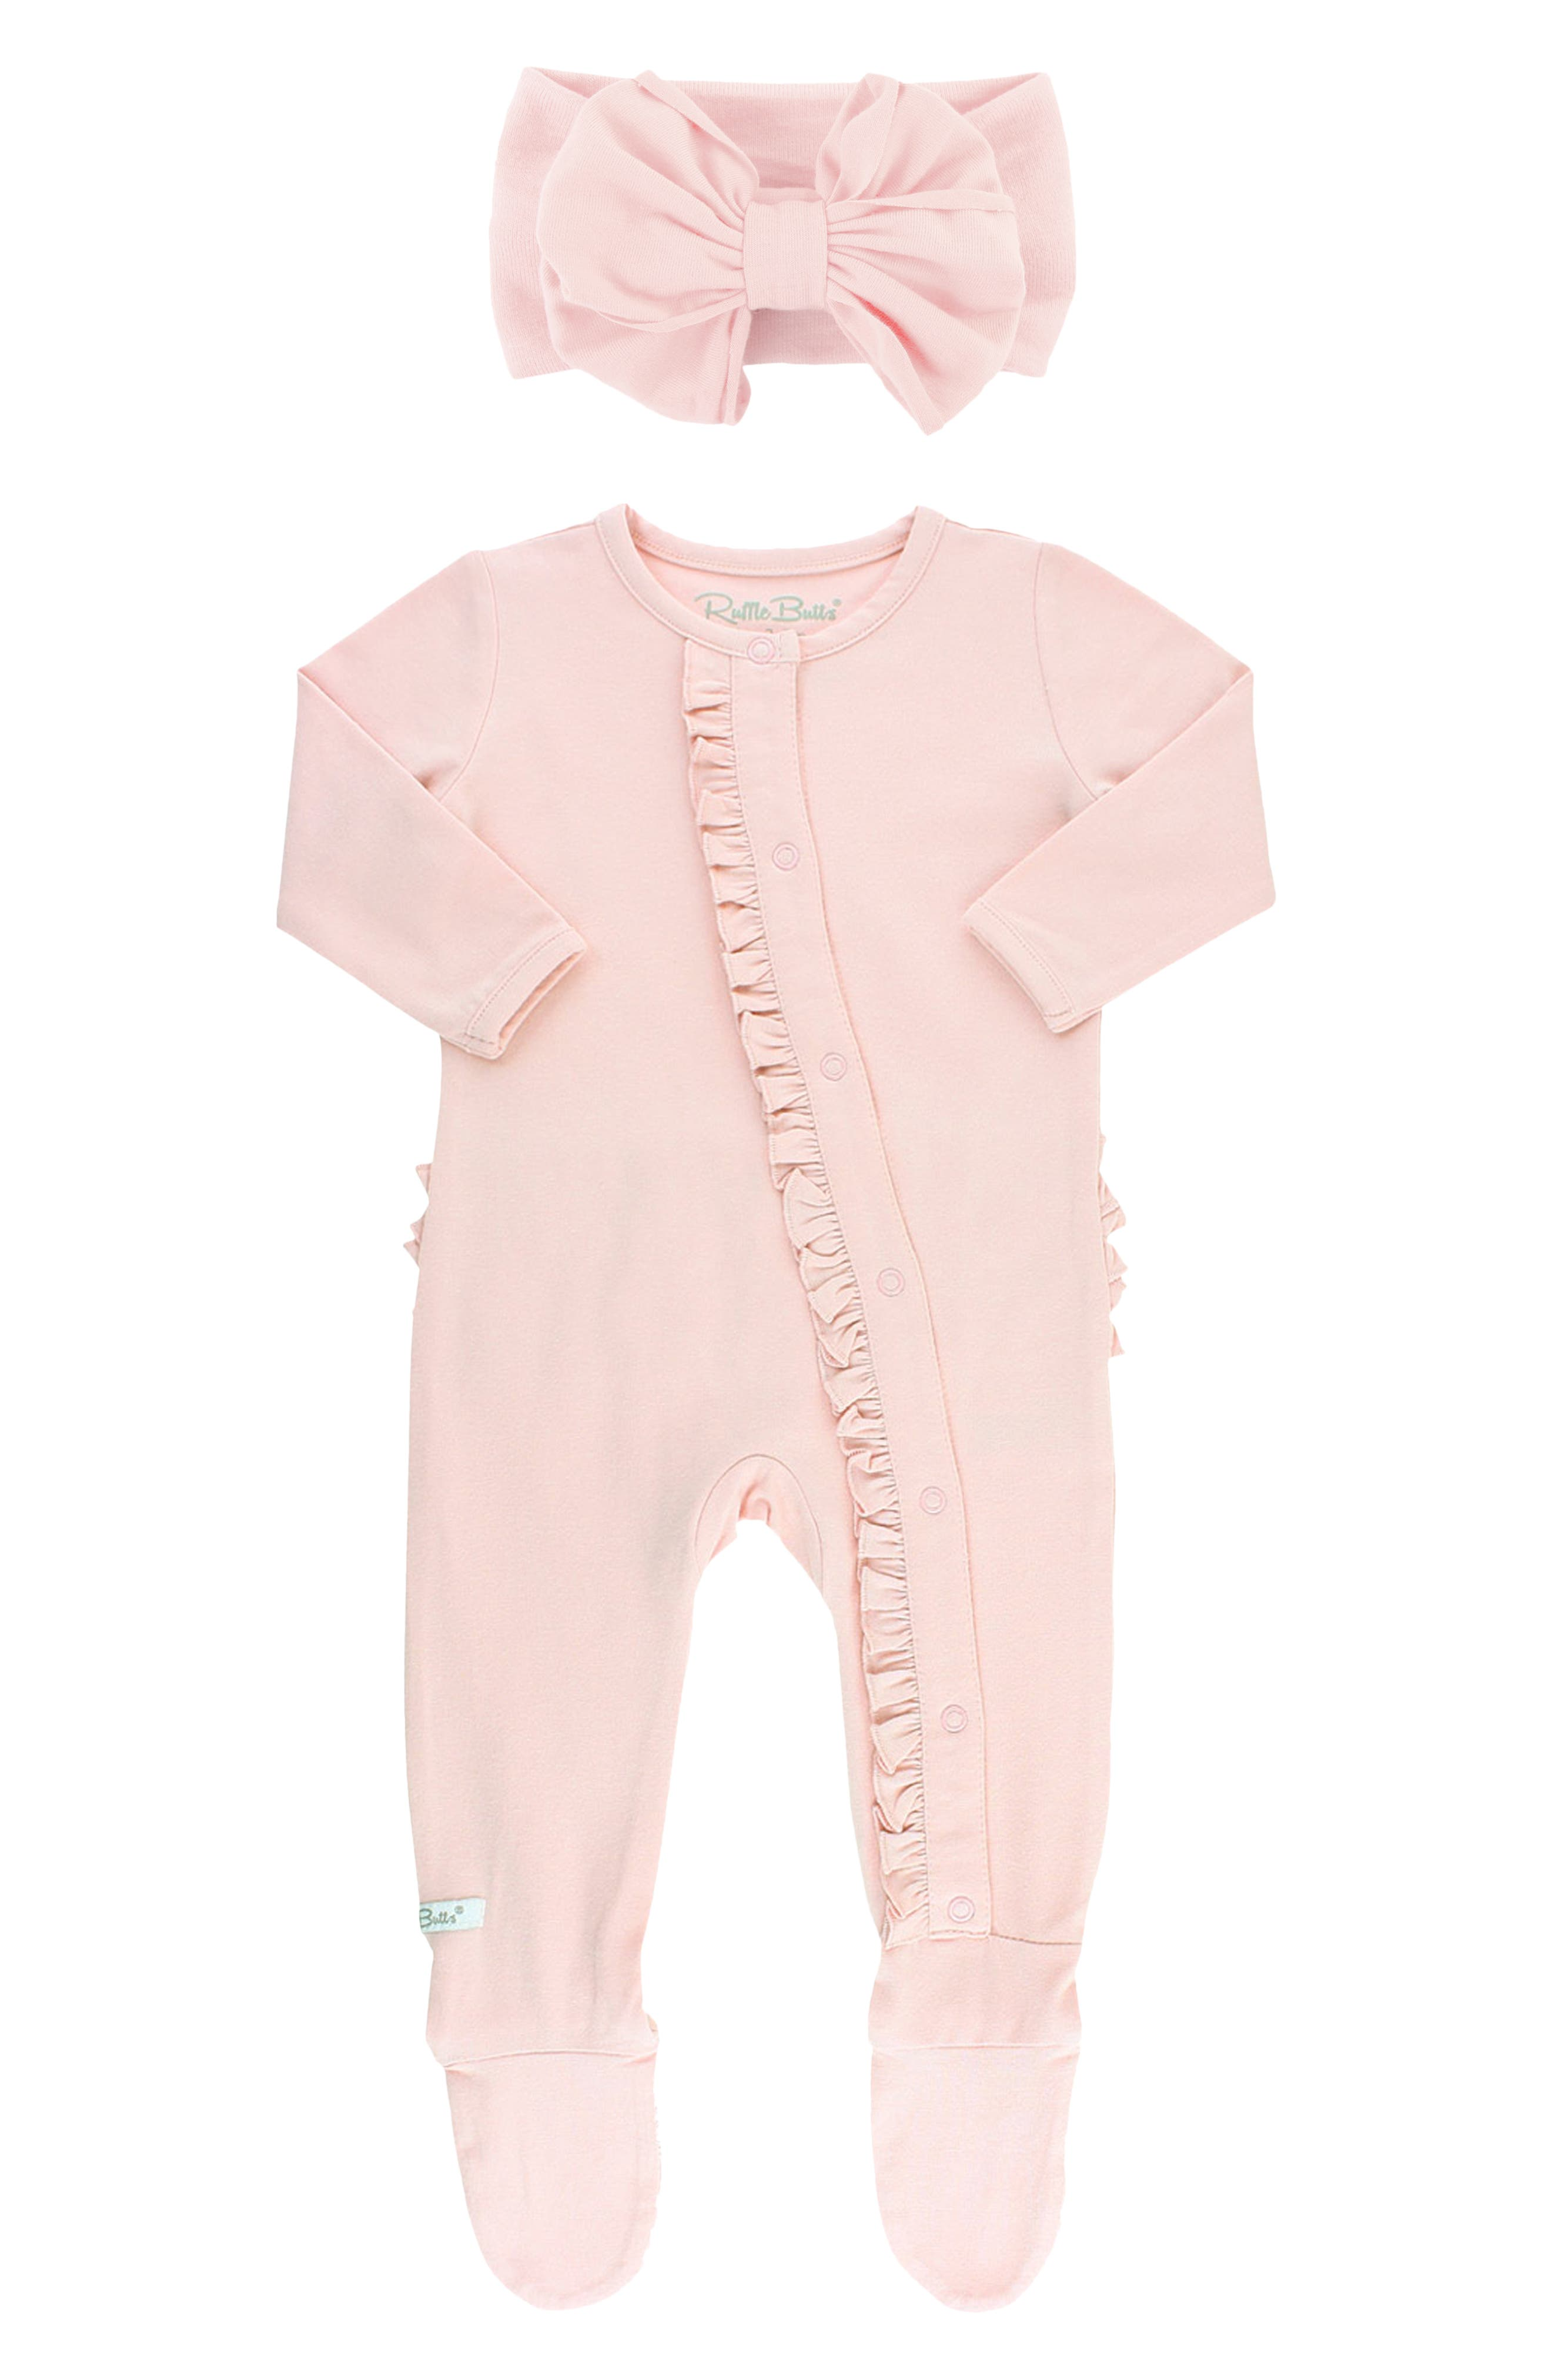 Just because the day is ending doesn\\\'t mean baby\\\'s cute style has to-enter these pretty-in-pink jammies with signature ruffles across the derriere. The luxuriously soft and lightweight fabric is perfect for taking your little one from naptime to playtime in total comfort. This footed style is paired with a bowed head wrap to keep the pajama party going all day long. Style Name: Rufflebutts Ballet Pink Ruffle Fitted One-Piece Pajamas & Head Wrap